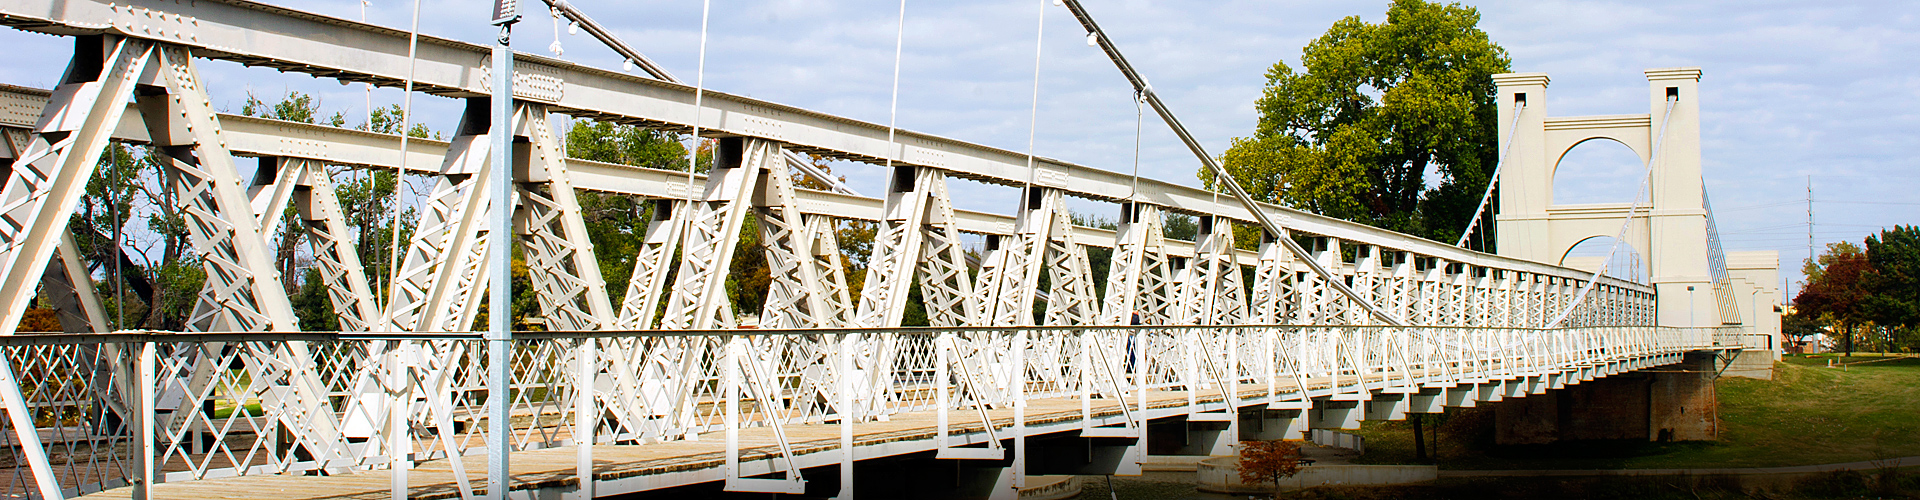 Washington-Bridge-Waco3